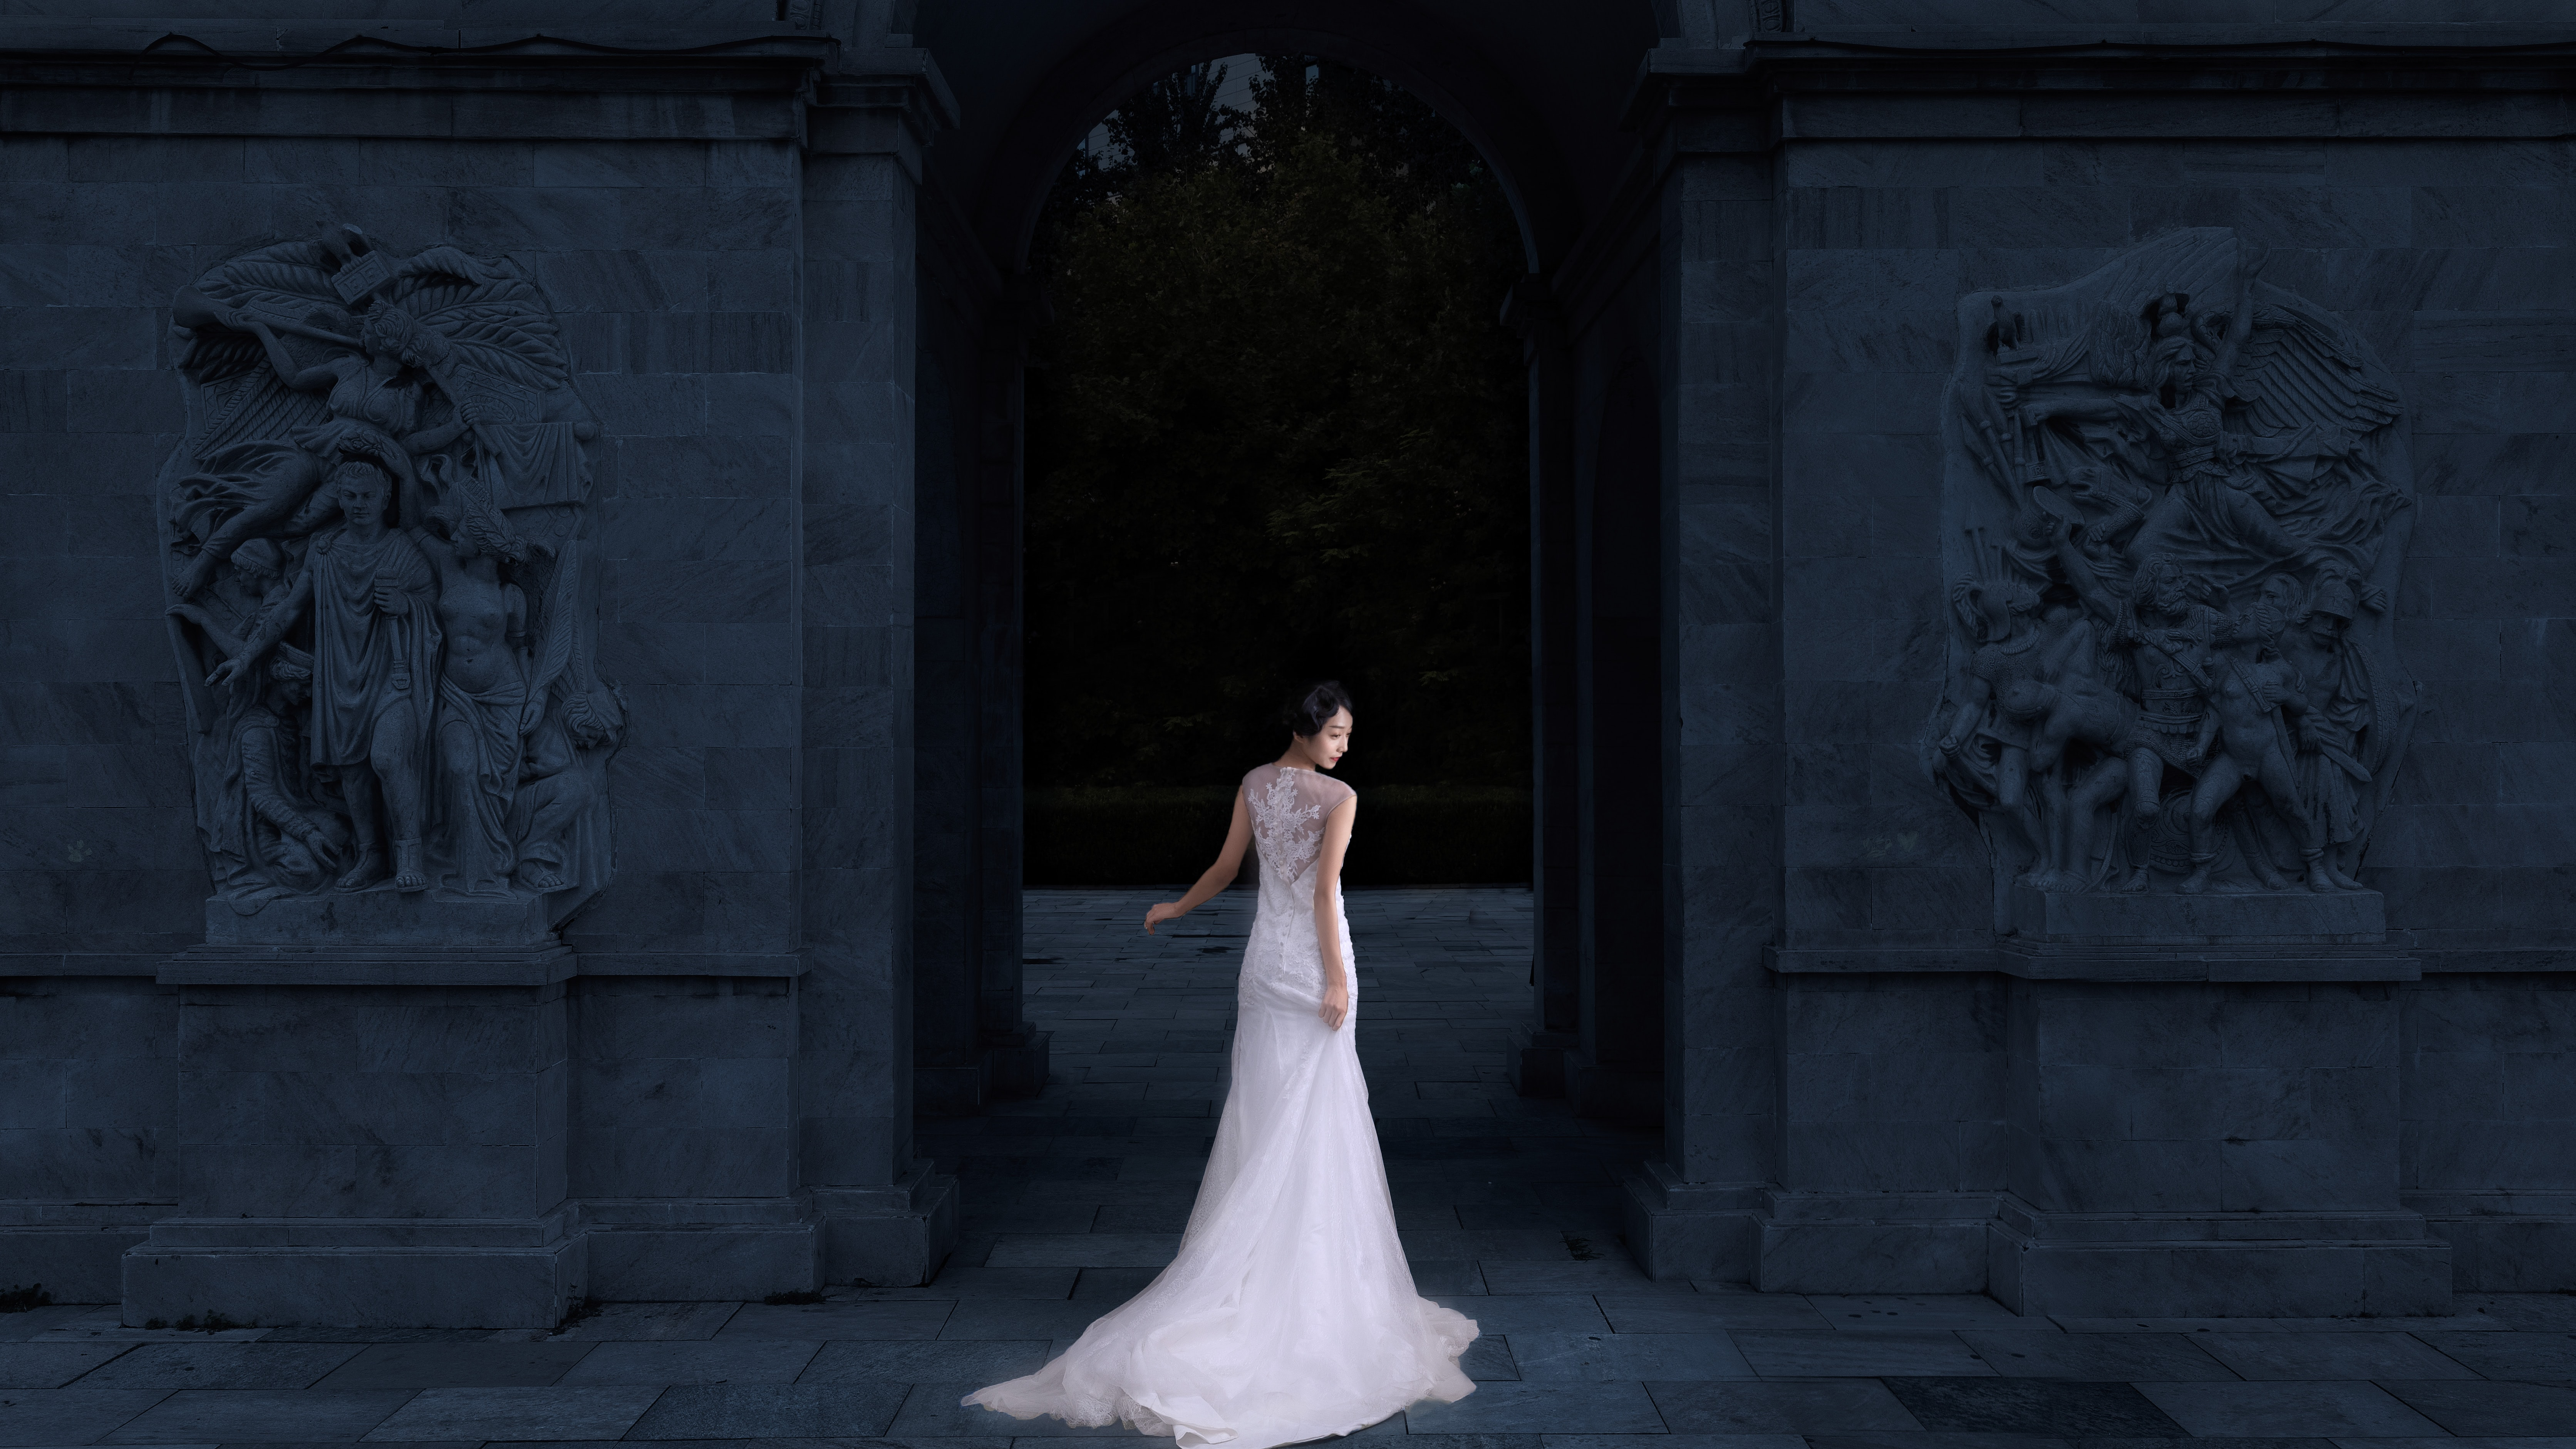 woman wearing white sleeveless wedding gown body facing towards building while face looking sideways